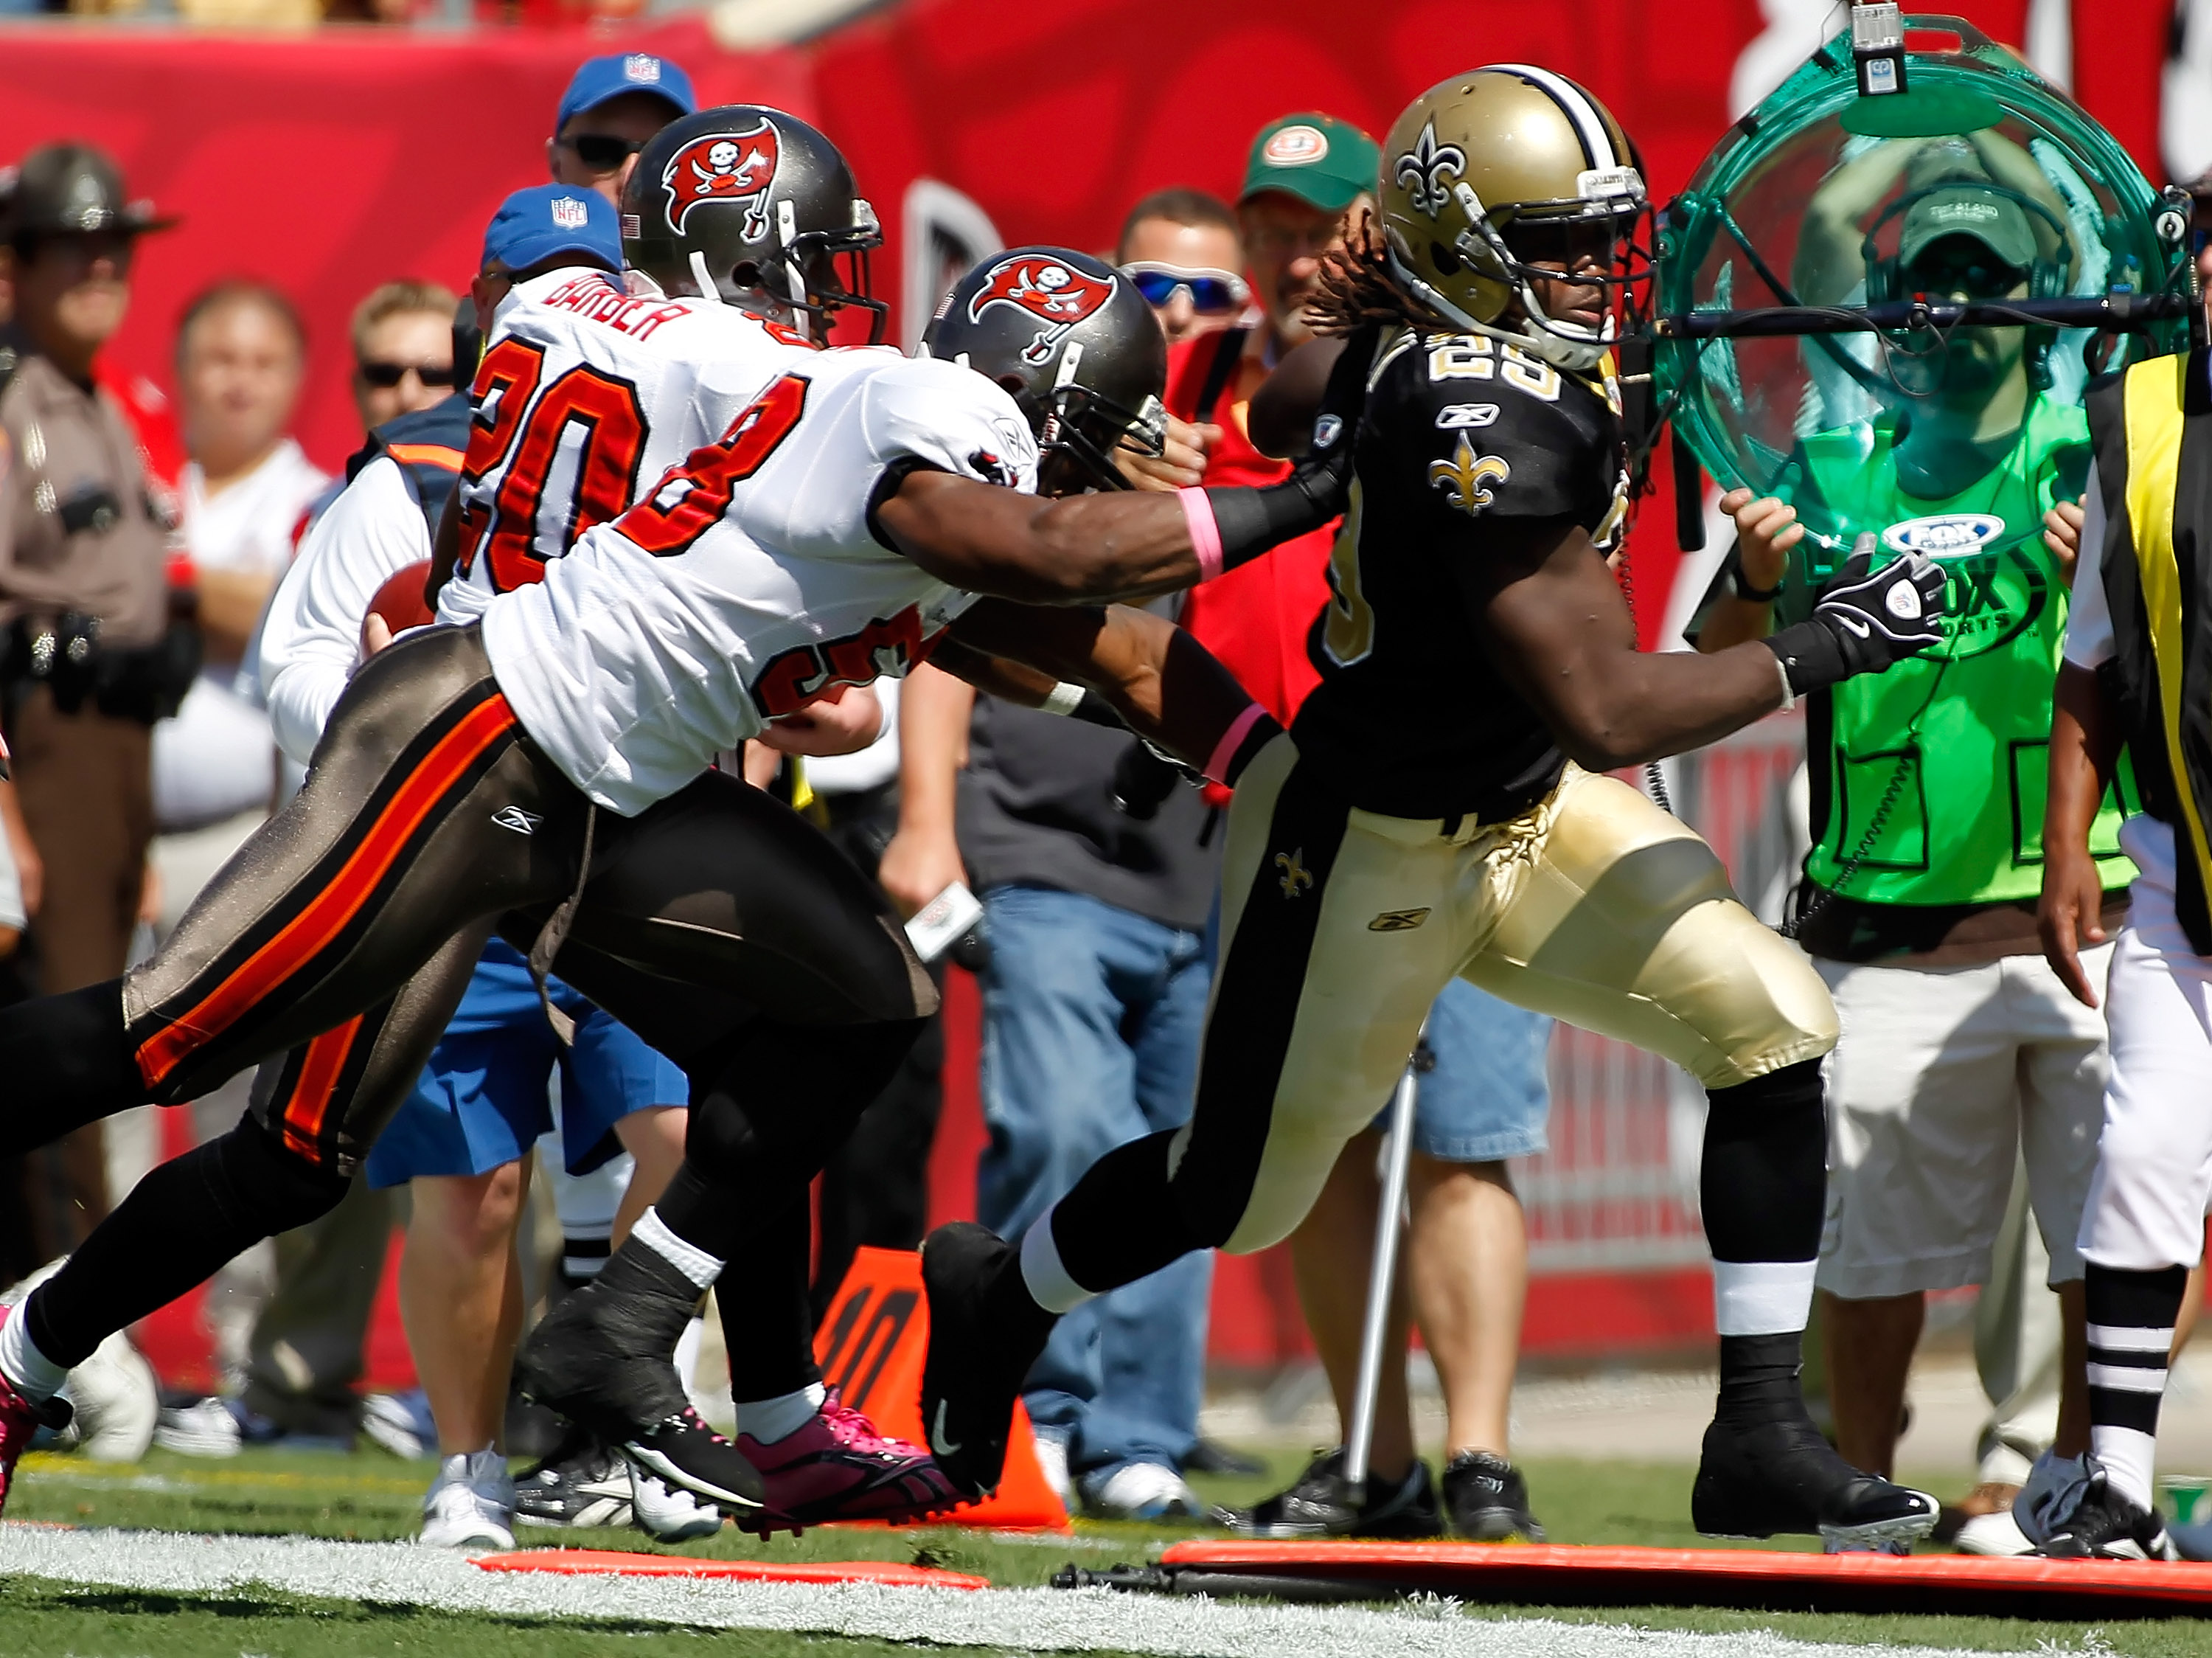 TAMPA, FL - OCTOBER 17:  Running back Chris Ivory #29 of the New Orleans Saints is knocked out of bounds by linebacker Quincy Black #58 of the Tampa Bay Buccaneers during the game at Raymond James Stadium on October 17, 2010 in Tampa, Florida.  (Photo by